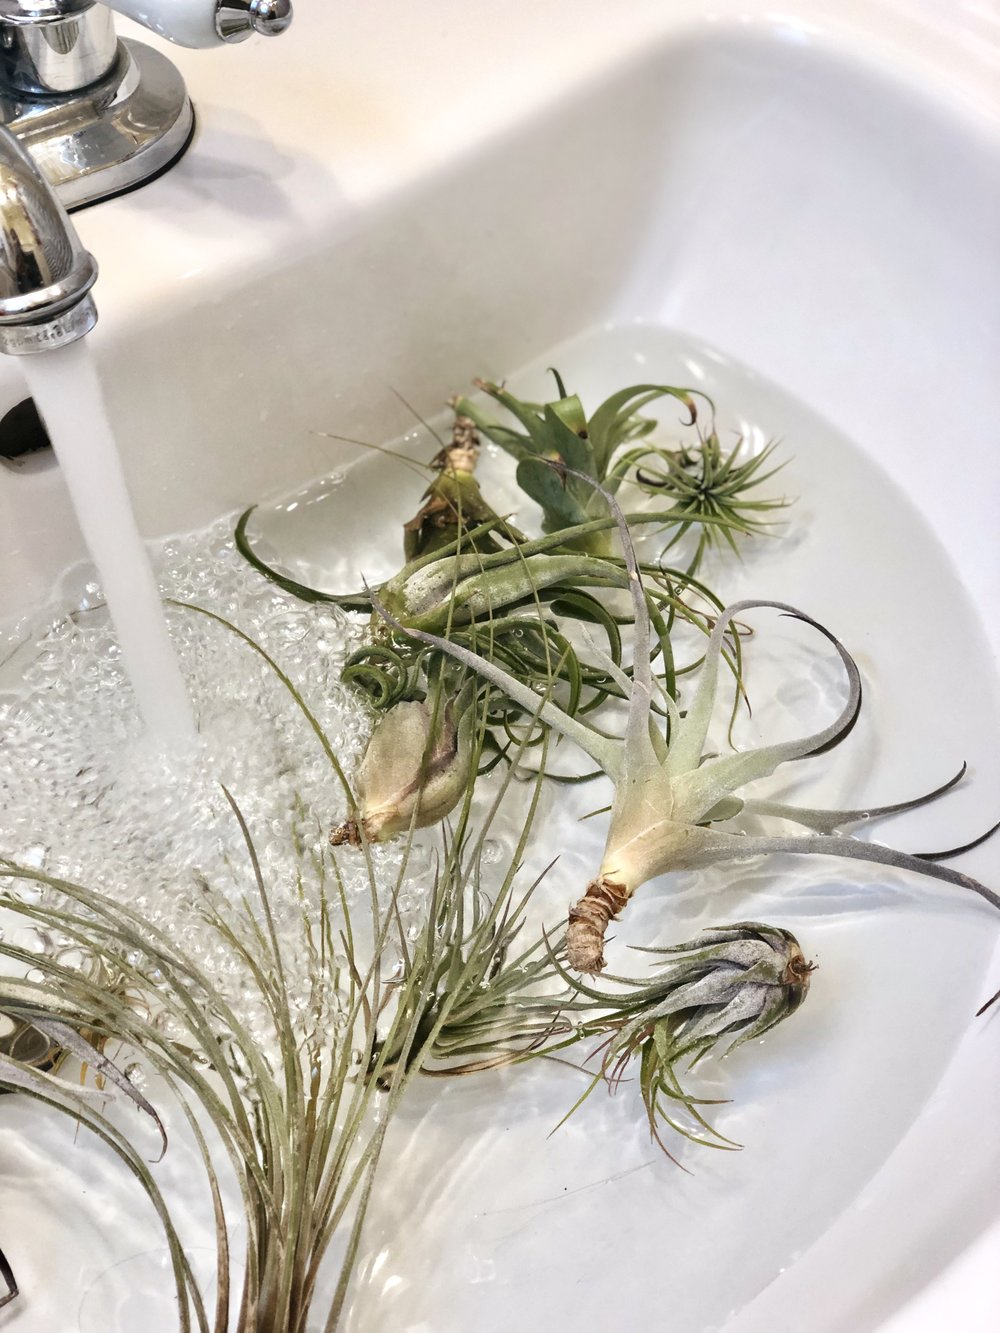 Sink of running water and air plants